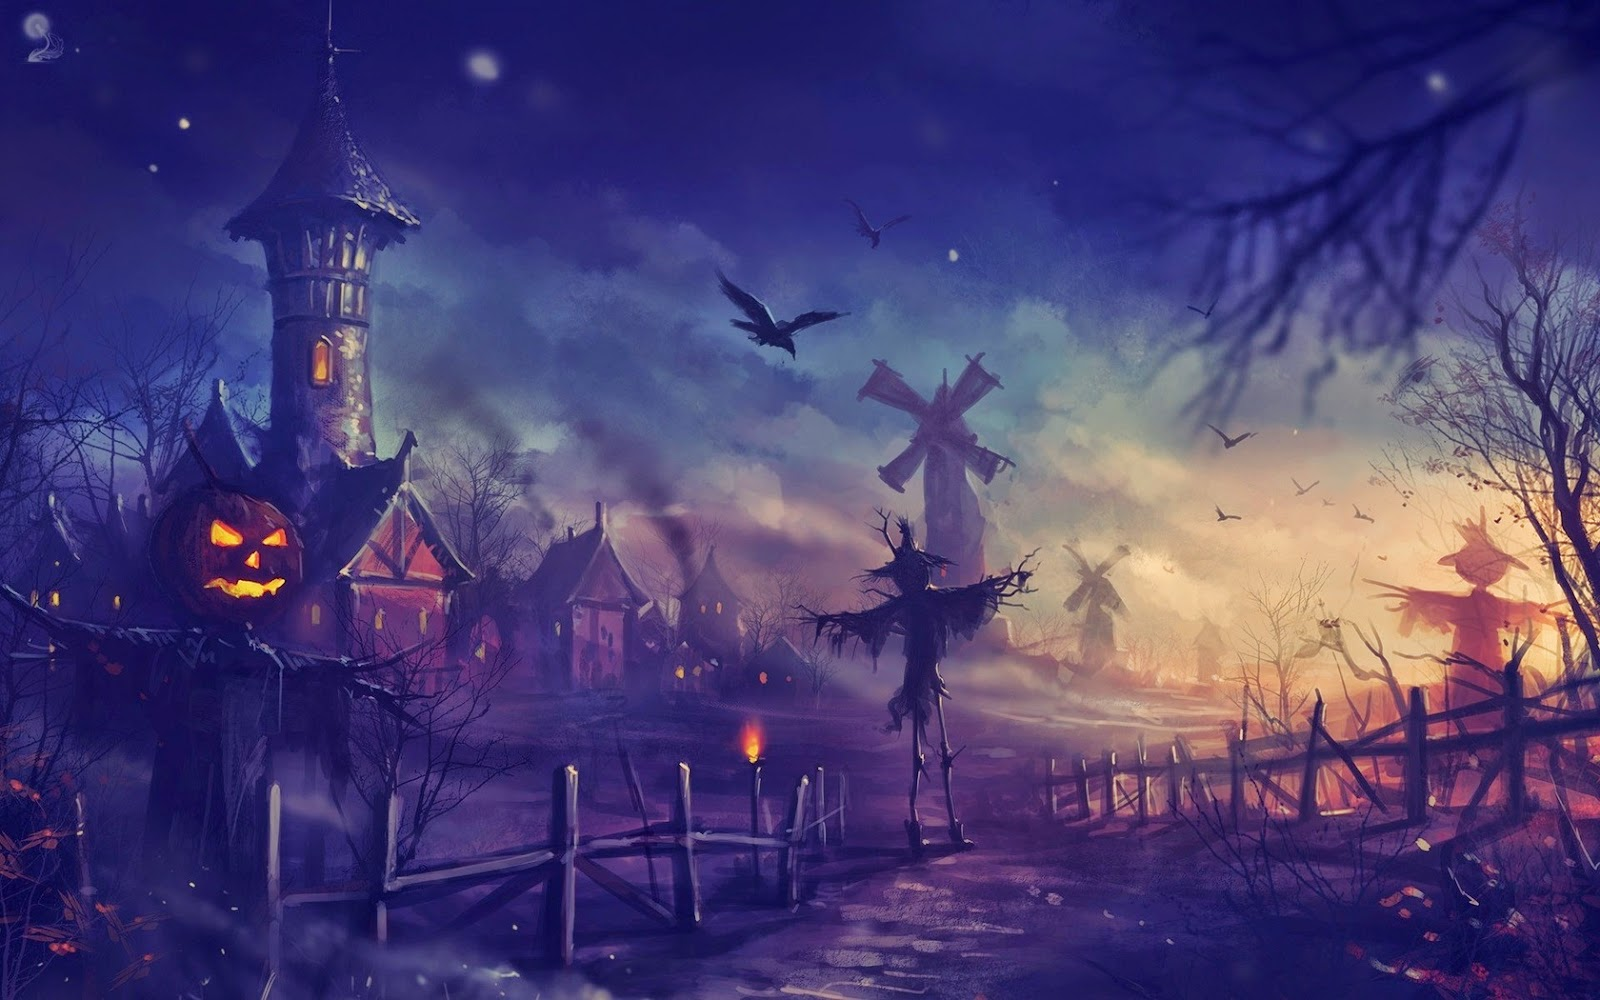 fairy-tale-halloween-story-images-for-kids-and-children.jpg